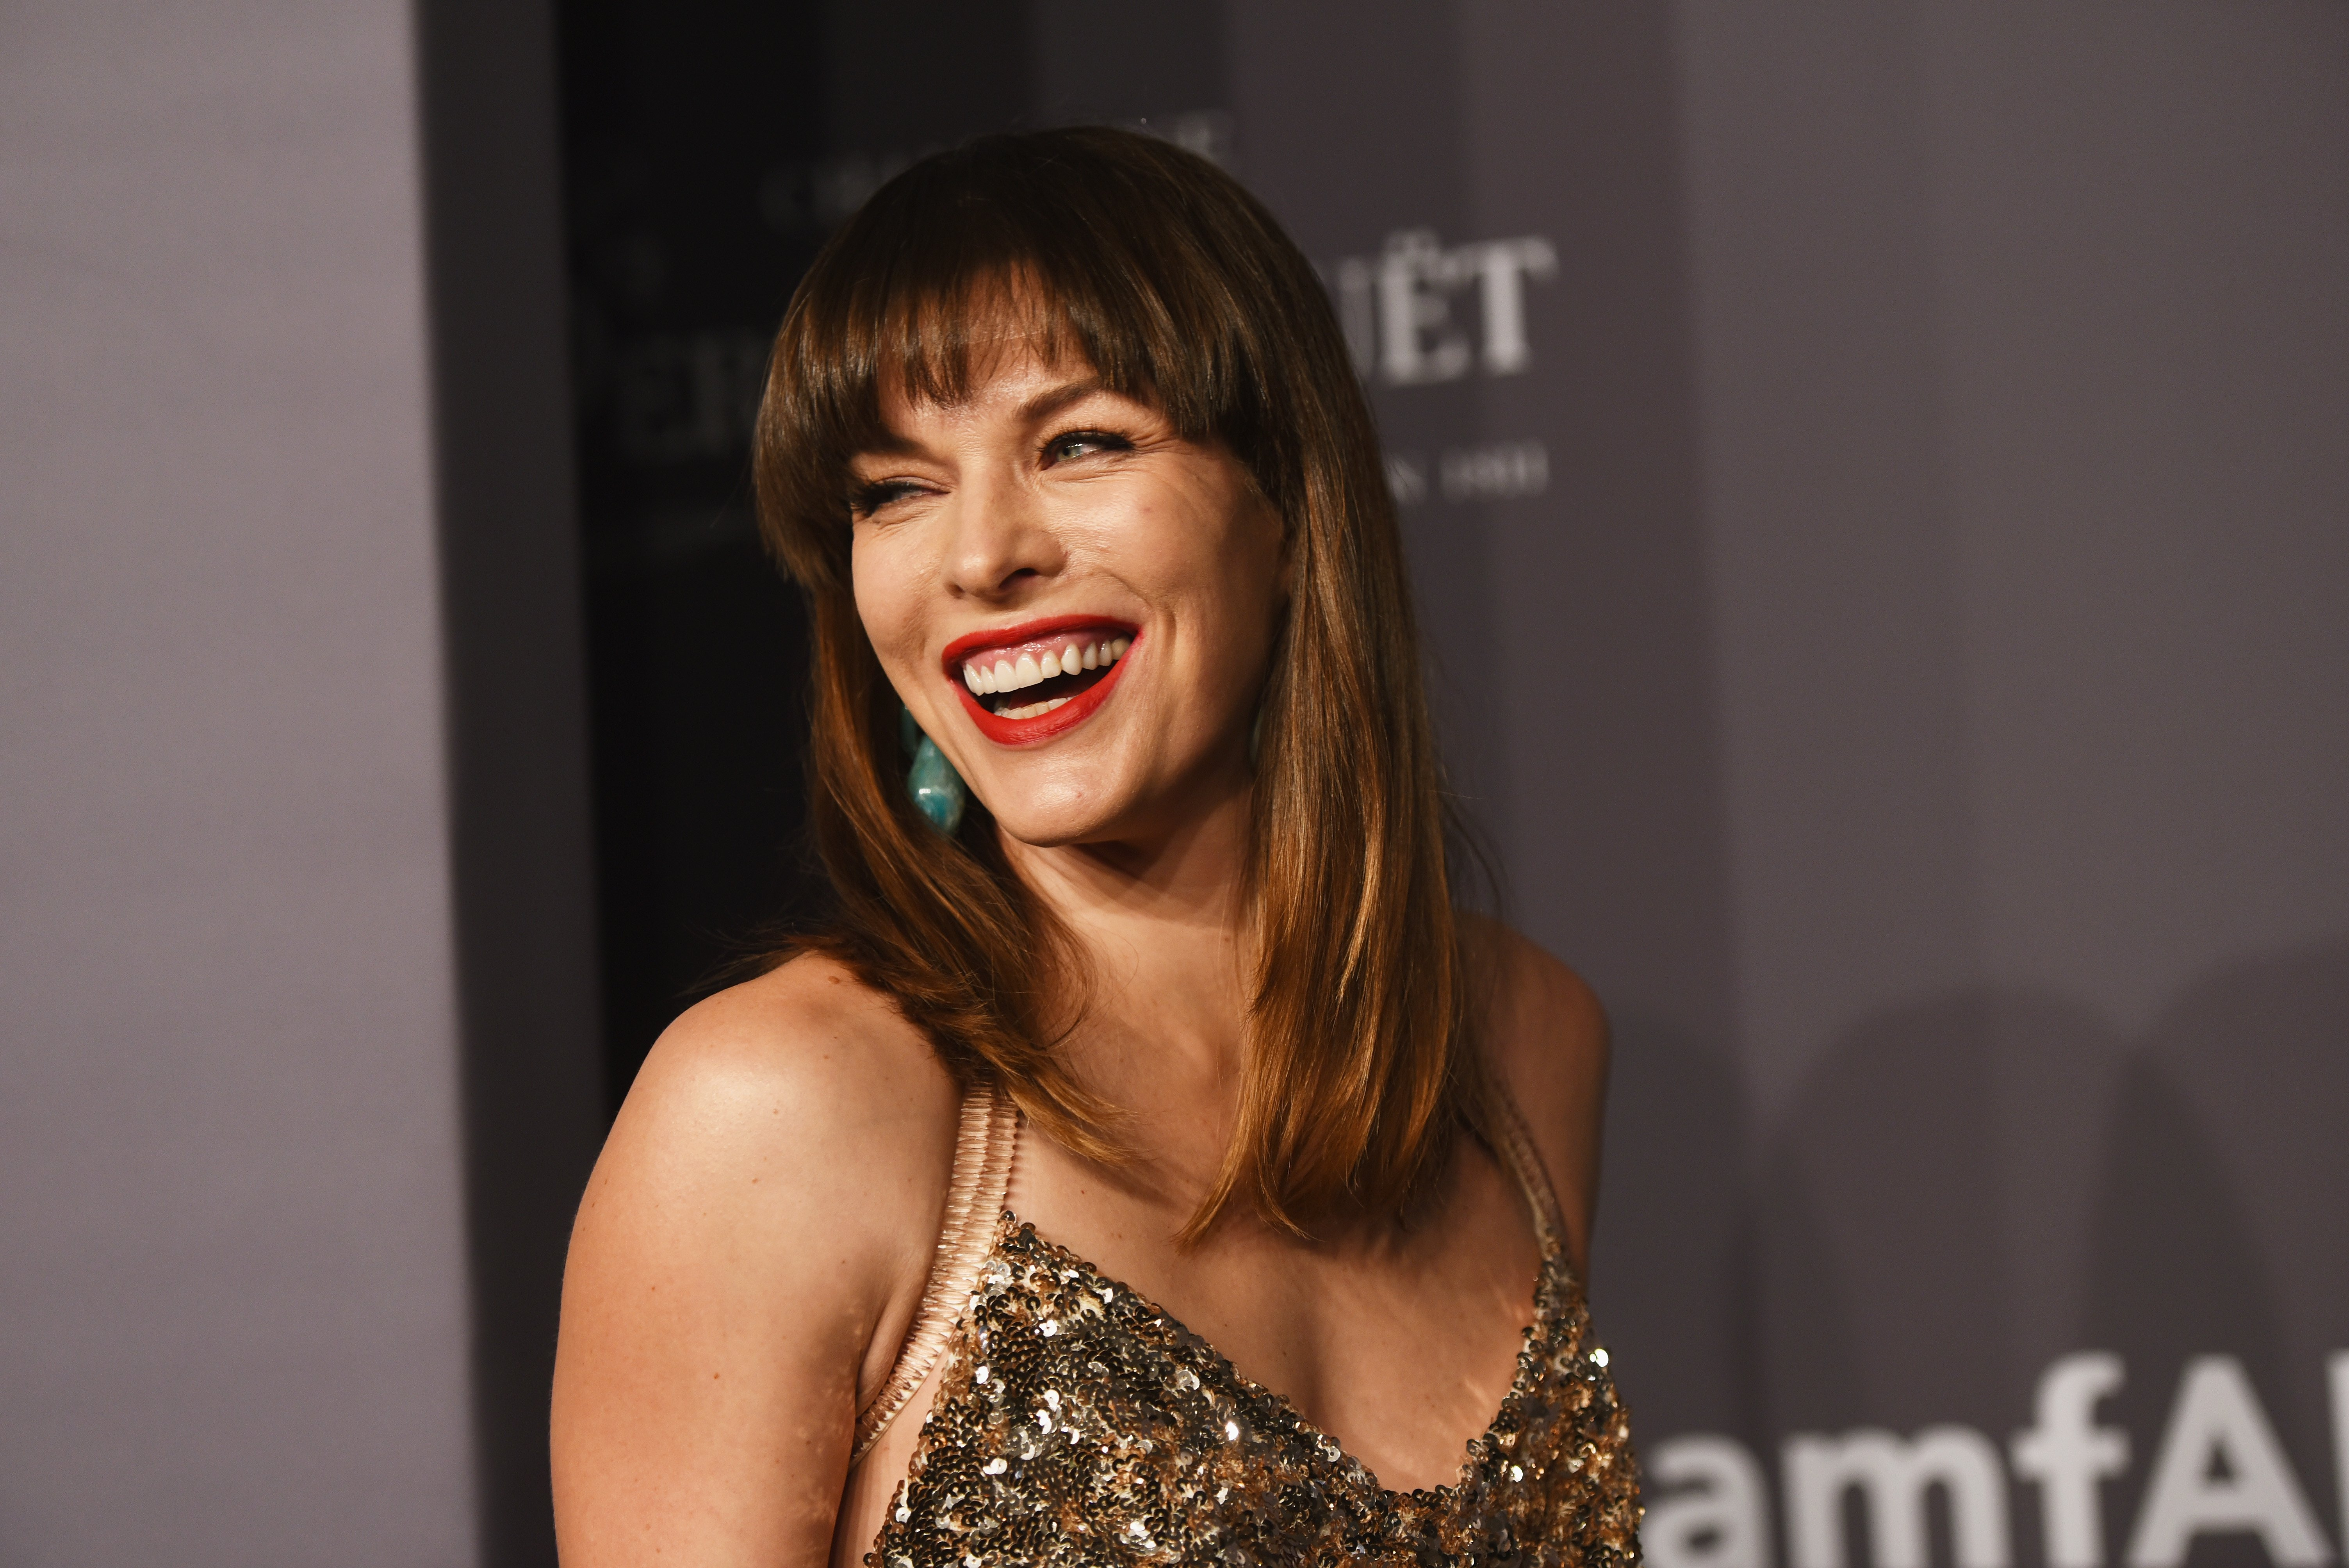 Milla Jovovich attends the amfAR New York Gala at Cipriana Wall Street in New York City on February 6, 2019 | Photo: Getty Images